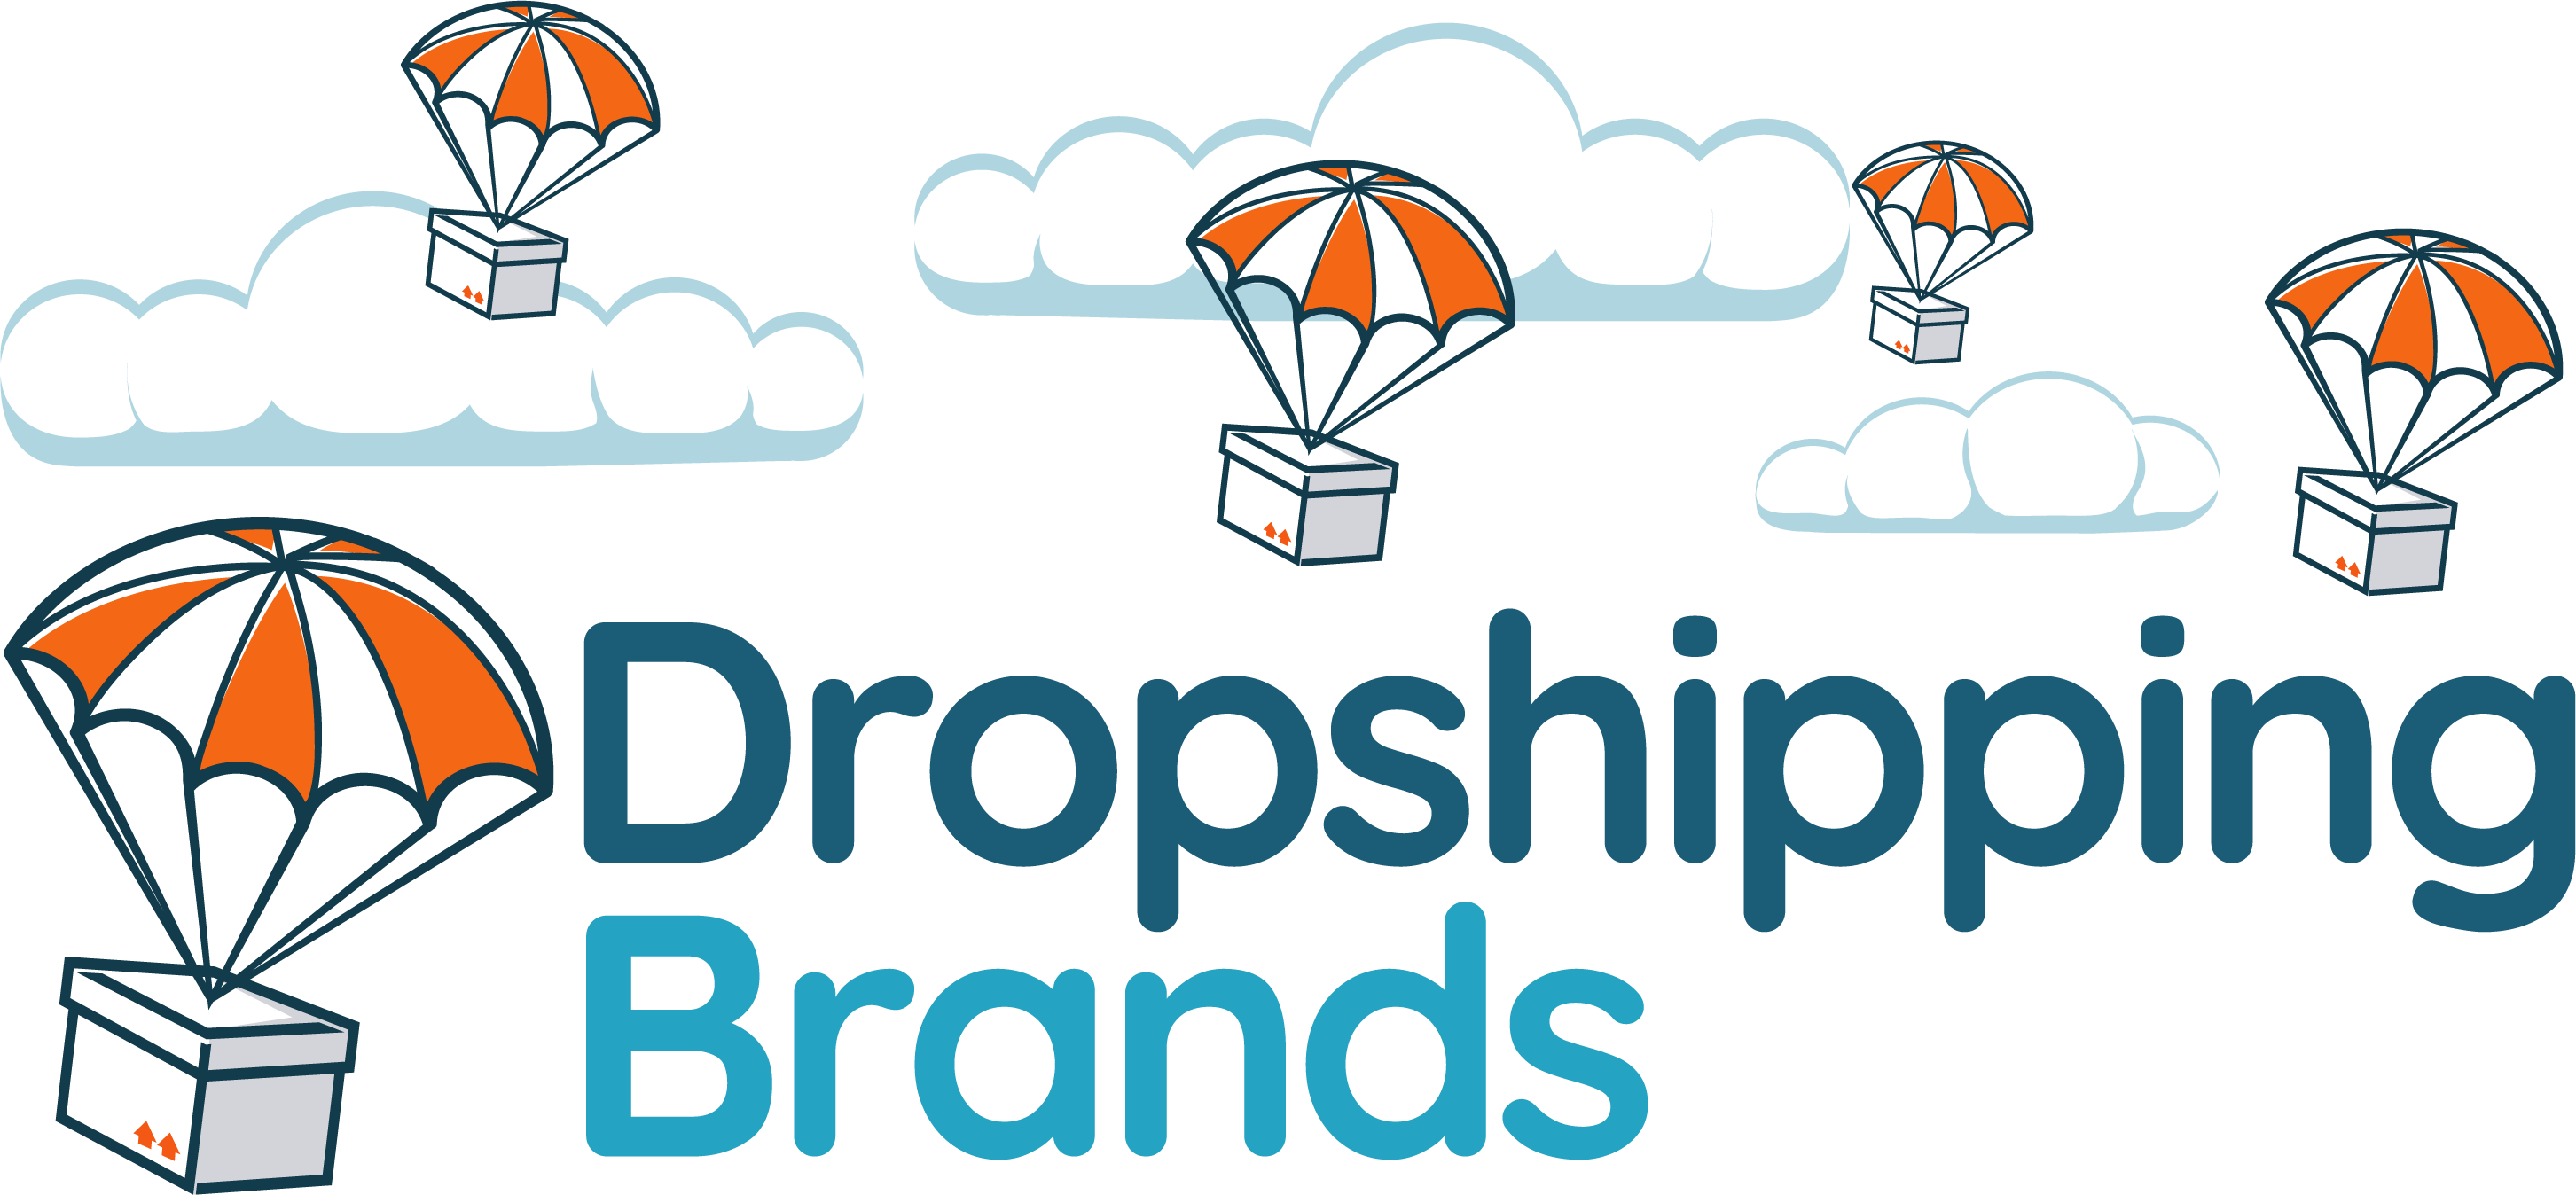 Dropshipping Brands Logo Contest